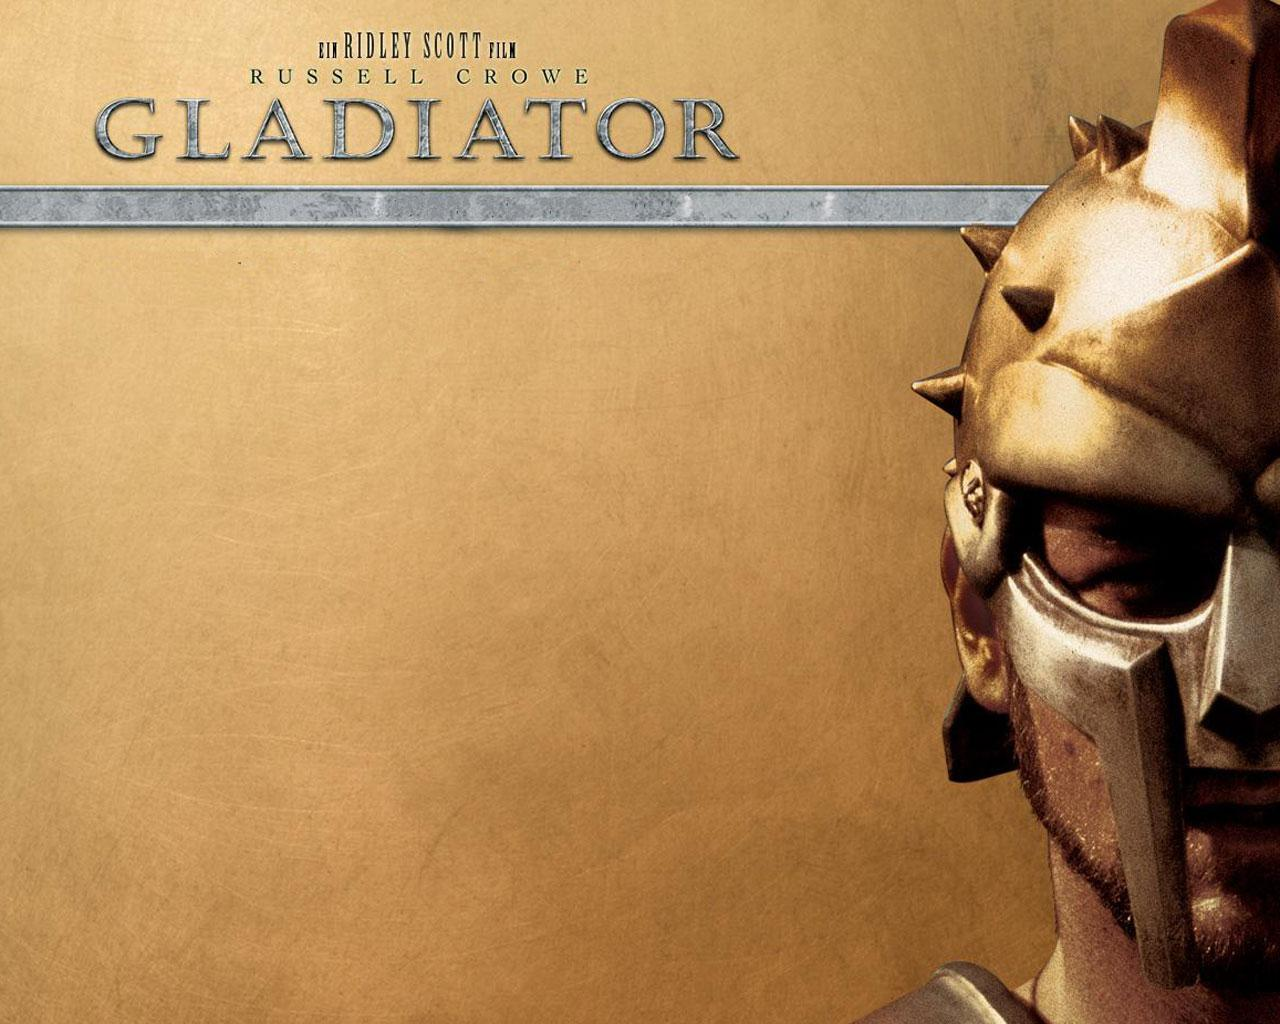 Best movie - Gladiator 1280x1024 Wallpaper #4